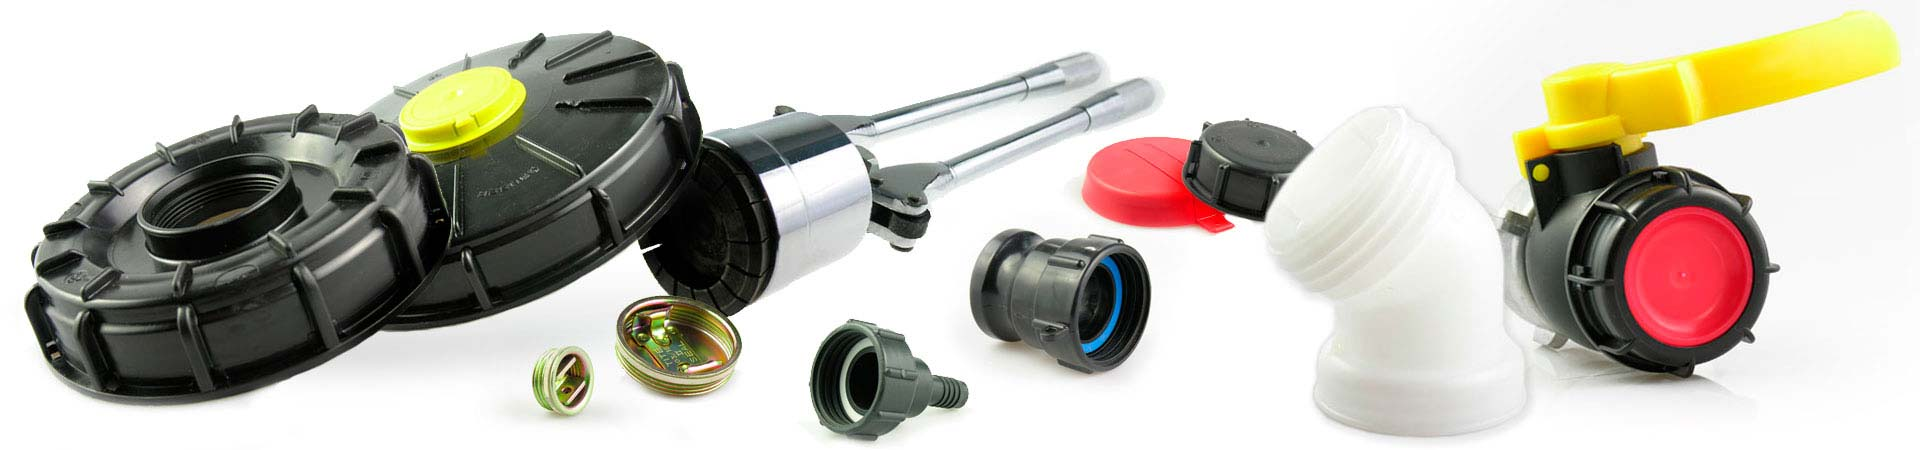 accessories – caps, seals, and lead seals for IBCs and drums